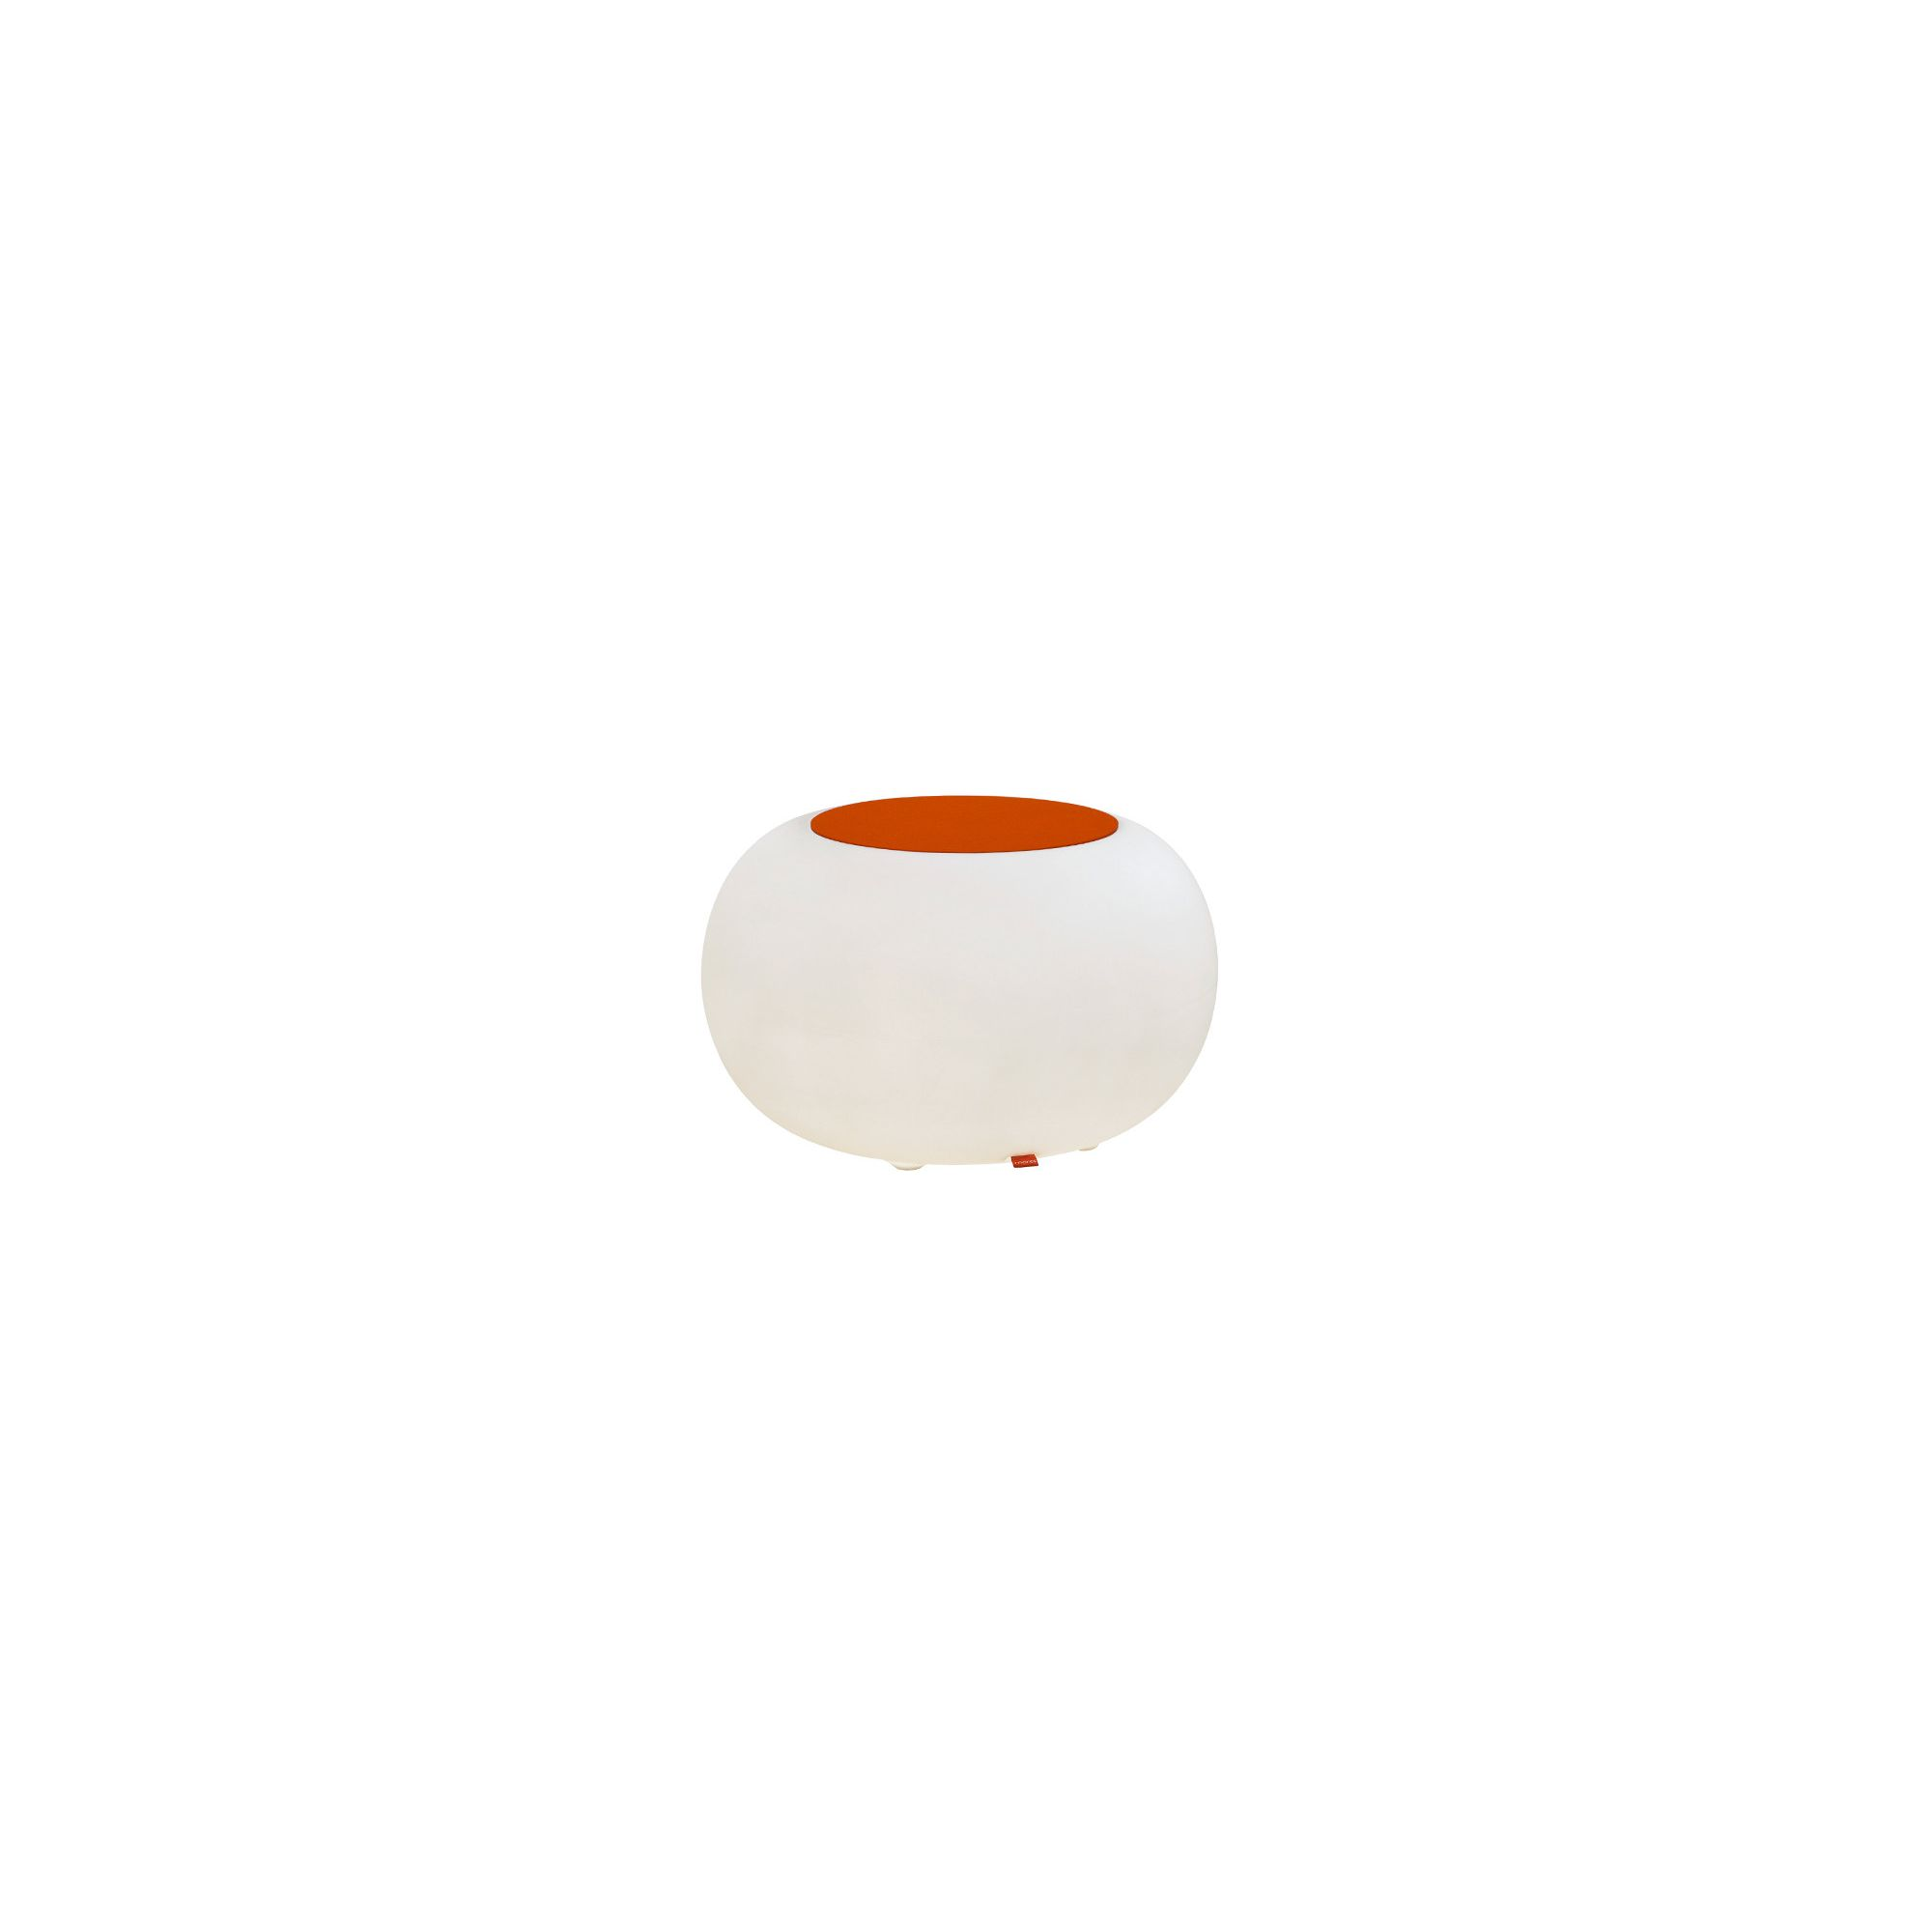 Moree Bubble Indoor Table - Felt Cushion Orange at Tesco Direct